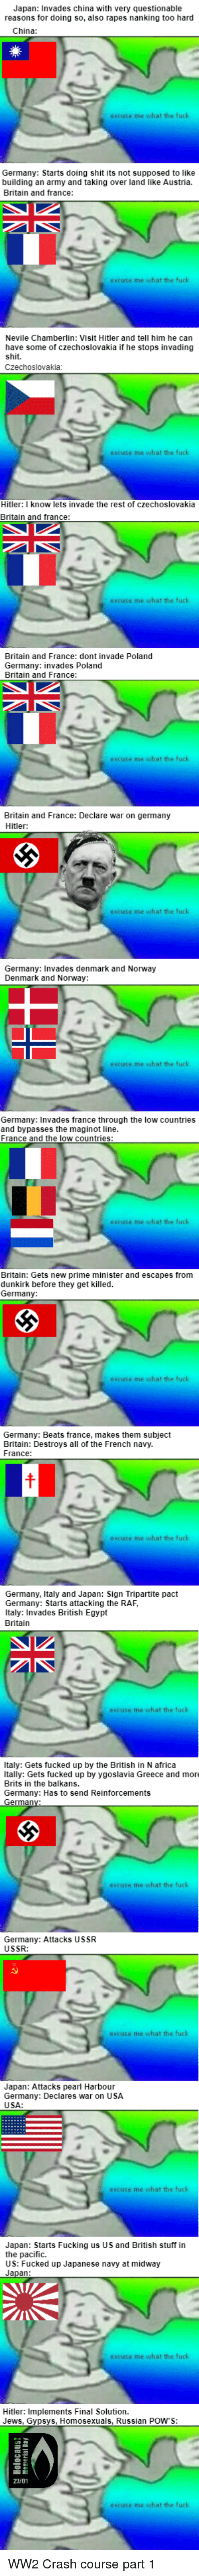 Fucking, Shit, and China: Japan: Inwades china with very questionable  reasons for doing so, a so rapes nanking too hard  Germany: Starts doing shit its not supposed to ike  building an my and taking over land like Austria  Britain andt  Nevile Chamberlin: Visit  have some of czechoslovakia if he stops inading  Hitler and  echoslovakia  Britain and France: dont invade Polend  Germany: invades Poland  Britain and France: Declare war on germany  Germany: Inwades denmark and Norway  Denmark and Norway  Germany: Invades france through the low counbries  and bypasses the  mapinot  Gets new  and escapes from  dunkirk before they get killed.  Germany: Beats france, makes them subject  Britainc Destroys all of the French navy.  Germany, Raly and Jepan: Sign Tripartite pact  Garmany: Starts attacking the RAF  taly: Invades British Egypt  taly: Gets luckad up by the British in N arica  nally Gets fucked up by ygoslvie Greece and mor  Attacks Us  Attack  s peart Harbour  Germany: Declares war on USA  Japan: Starts Fucking us US and Britsh stuff in  the pacific  US: Fucked up Jepanese navy at midway  Homosexu  an POWs